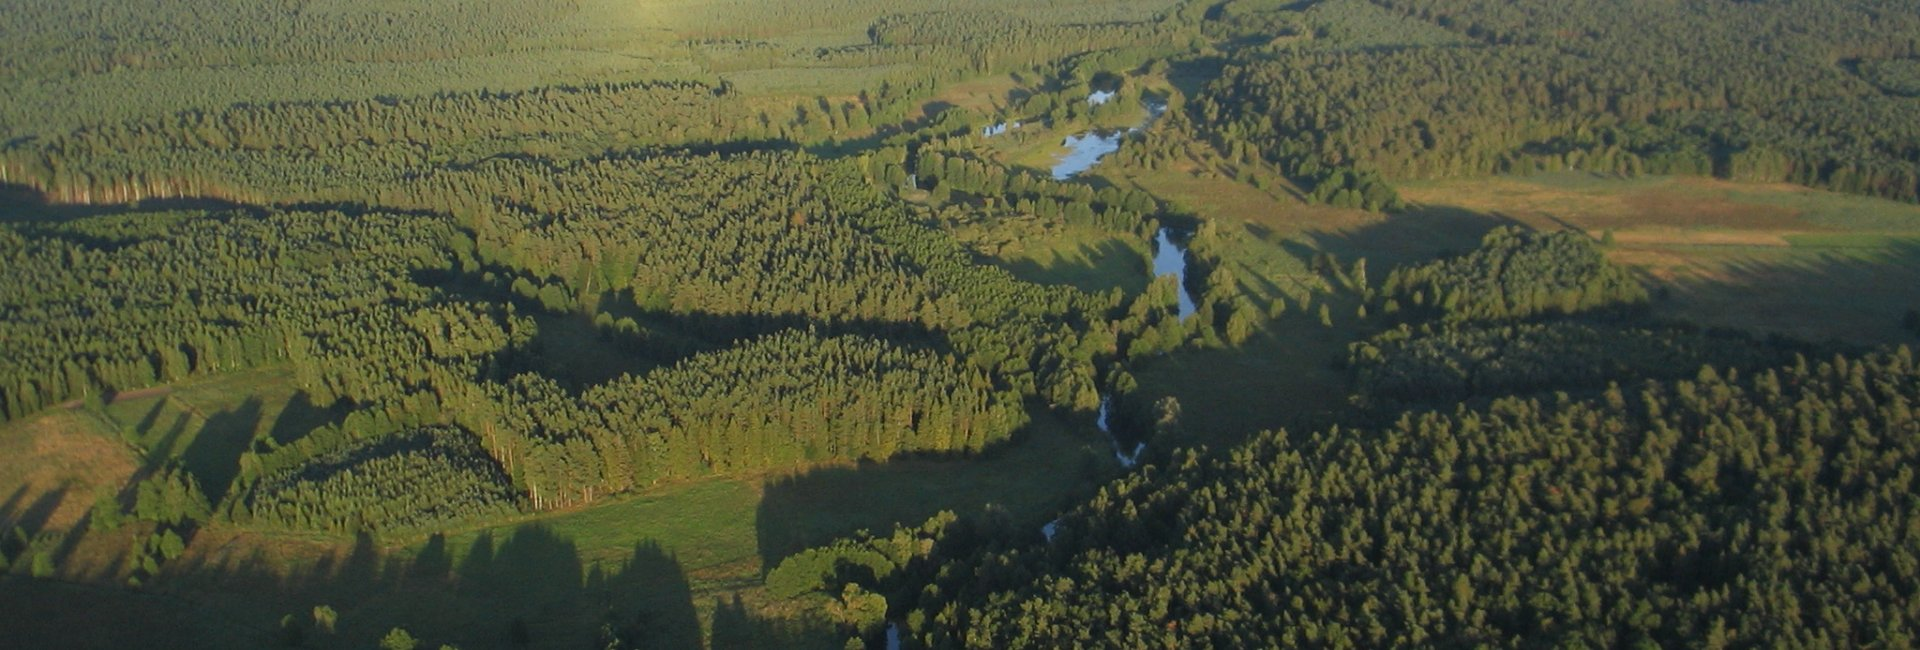 Taborskie Forests